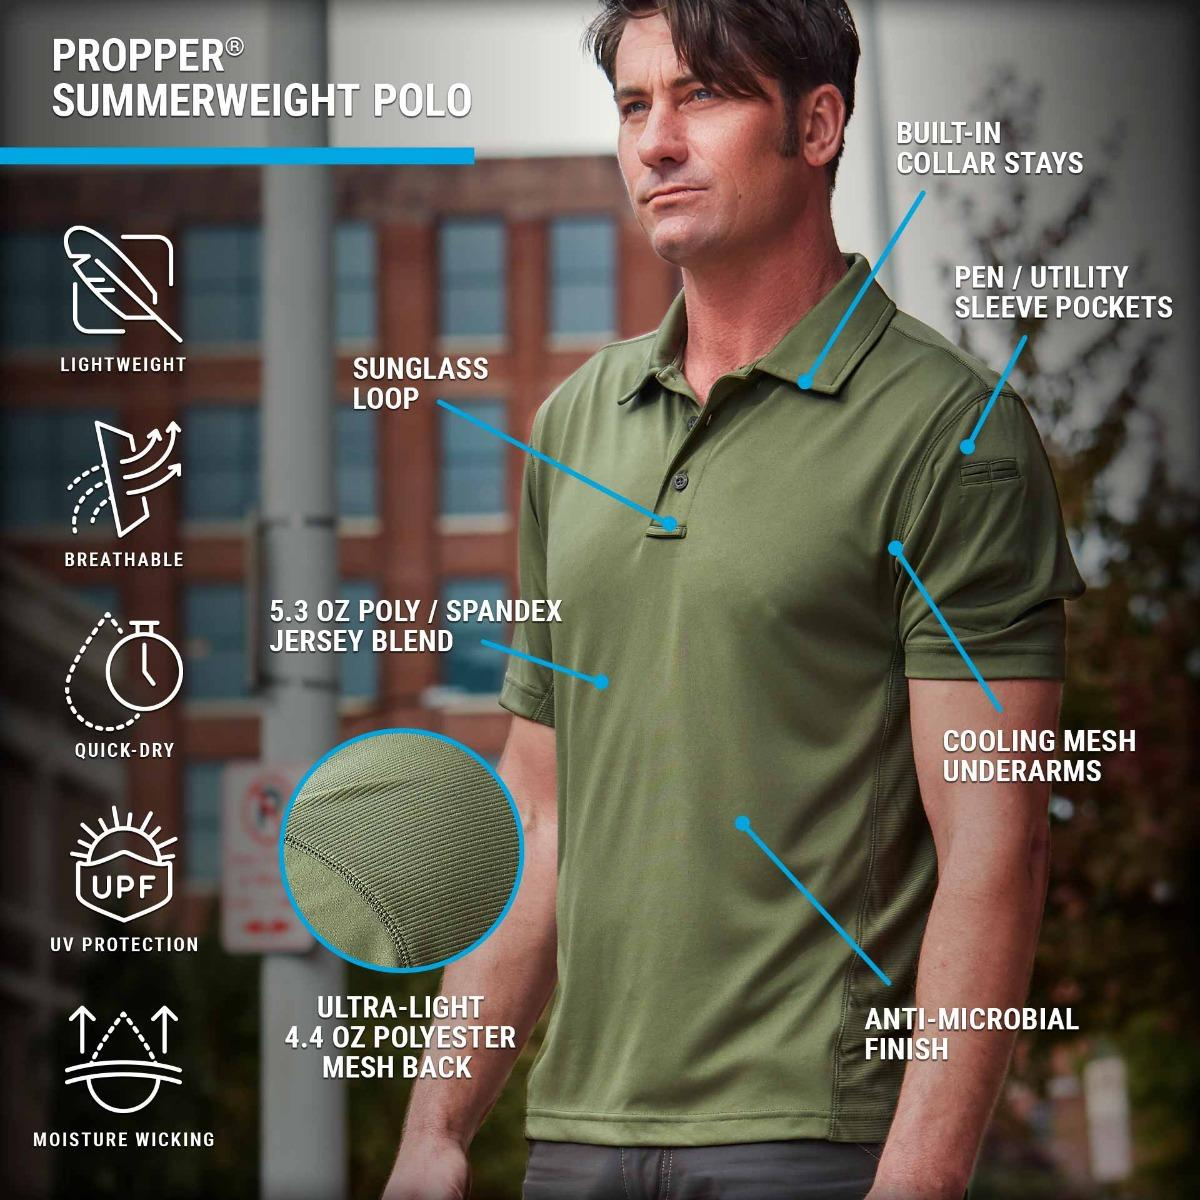 The Summerweight Polo features UV protection, cooling mesh underarms and ultra-light fabric for breathable performance.